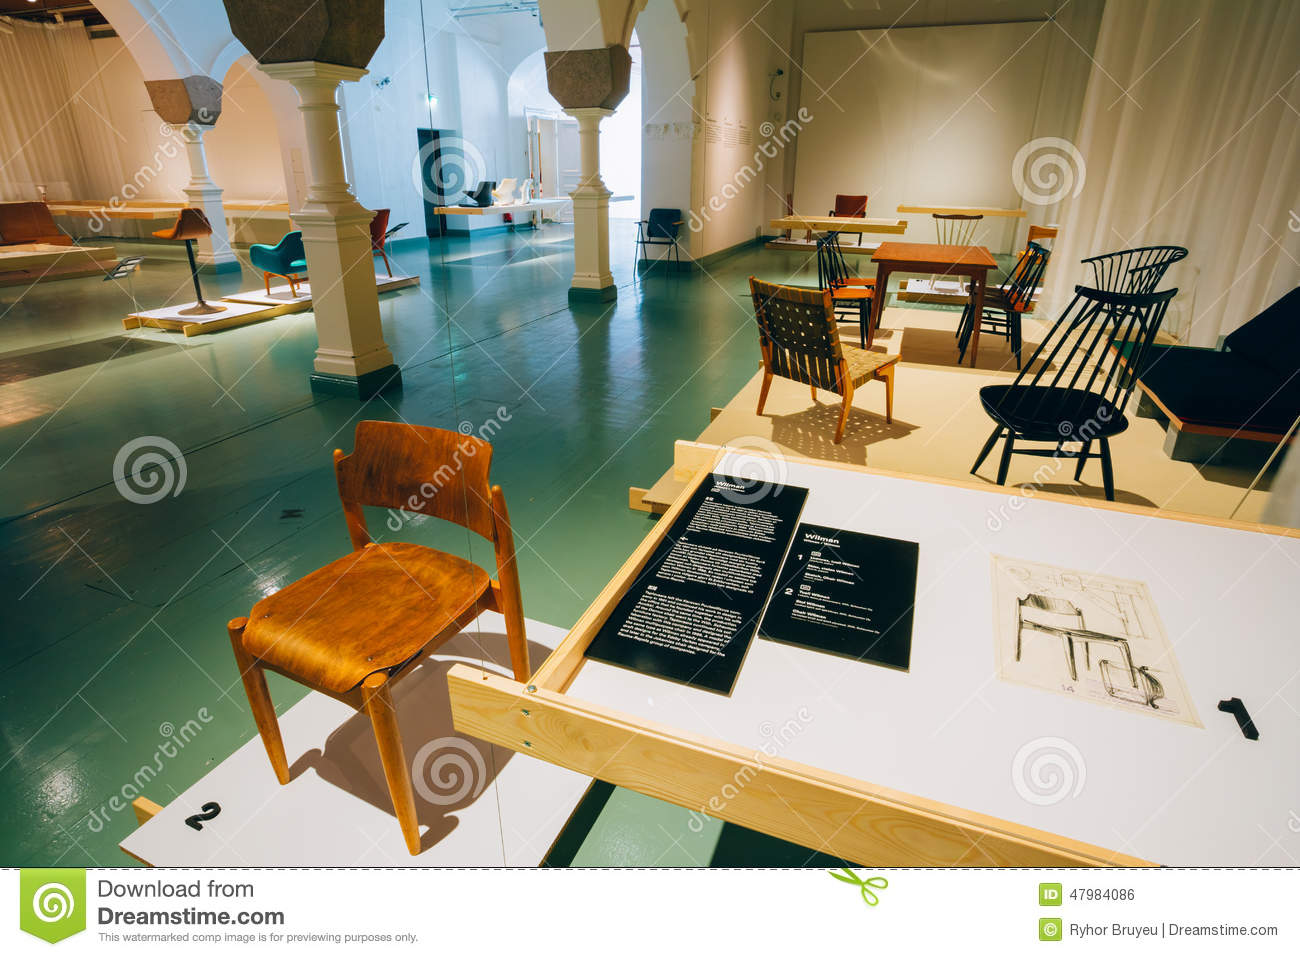 Exhibition At The Finnish Design Museum (Designmuseo) In Helsinki